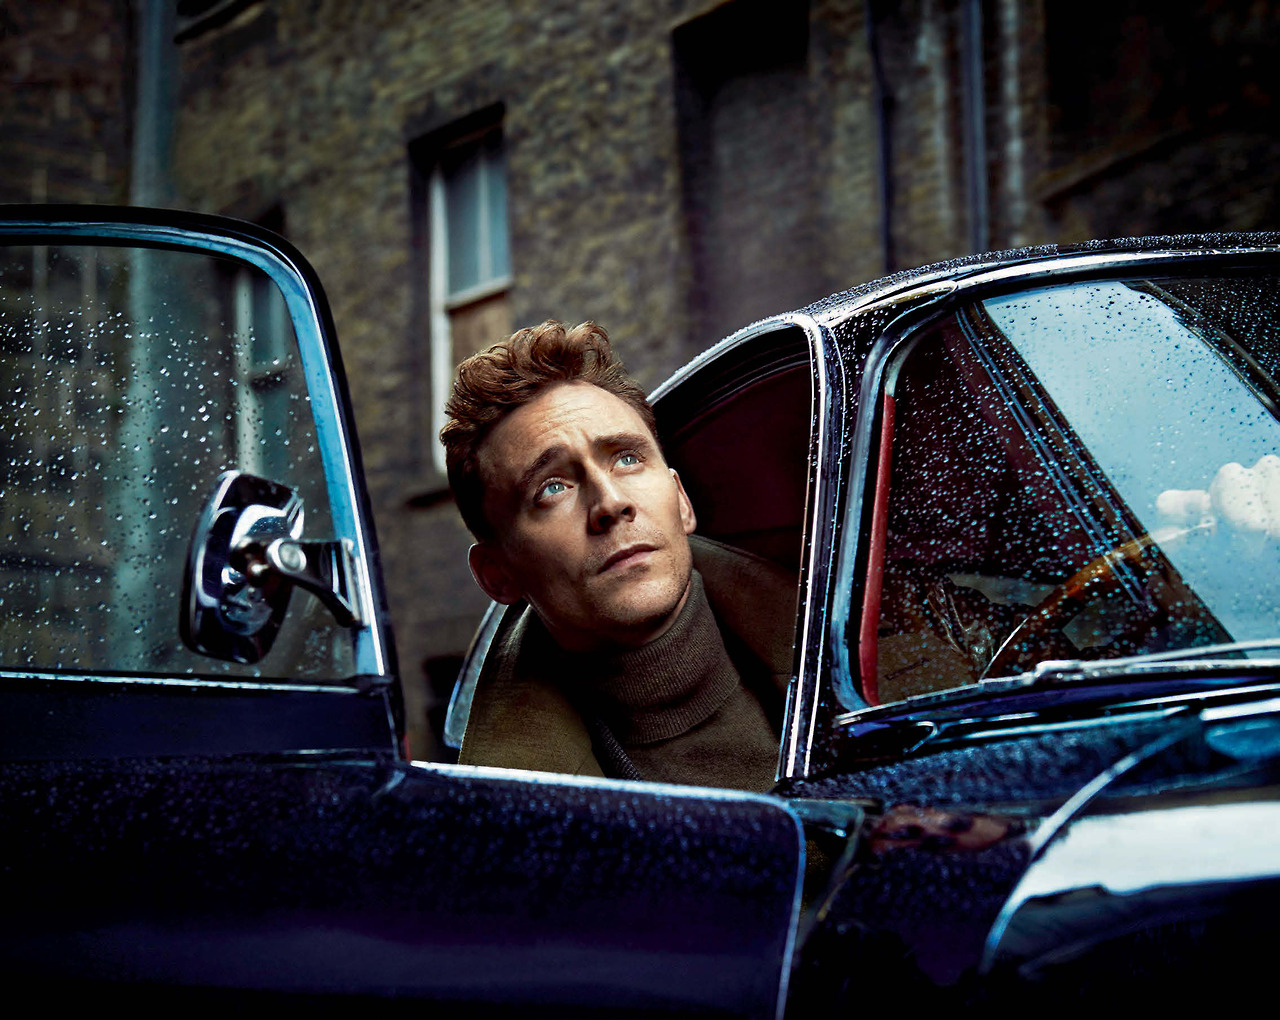 Tom Hiddleston Italian Fans: Photoshoot per la rivista ES ...